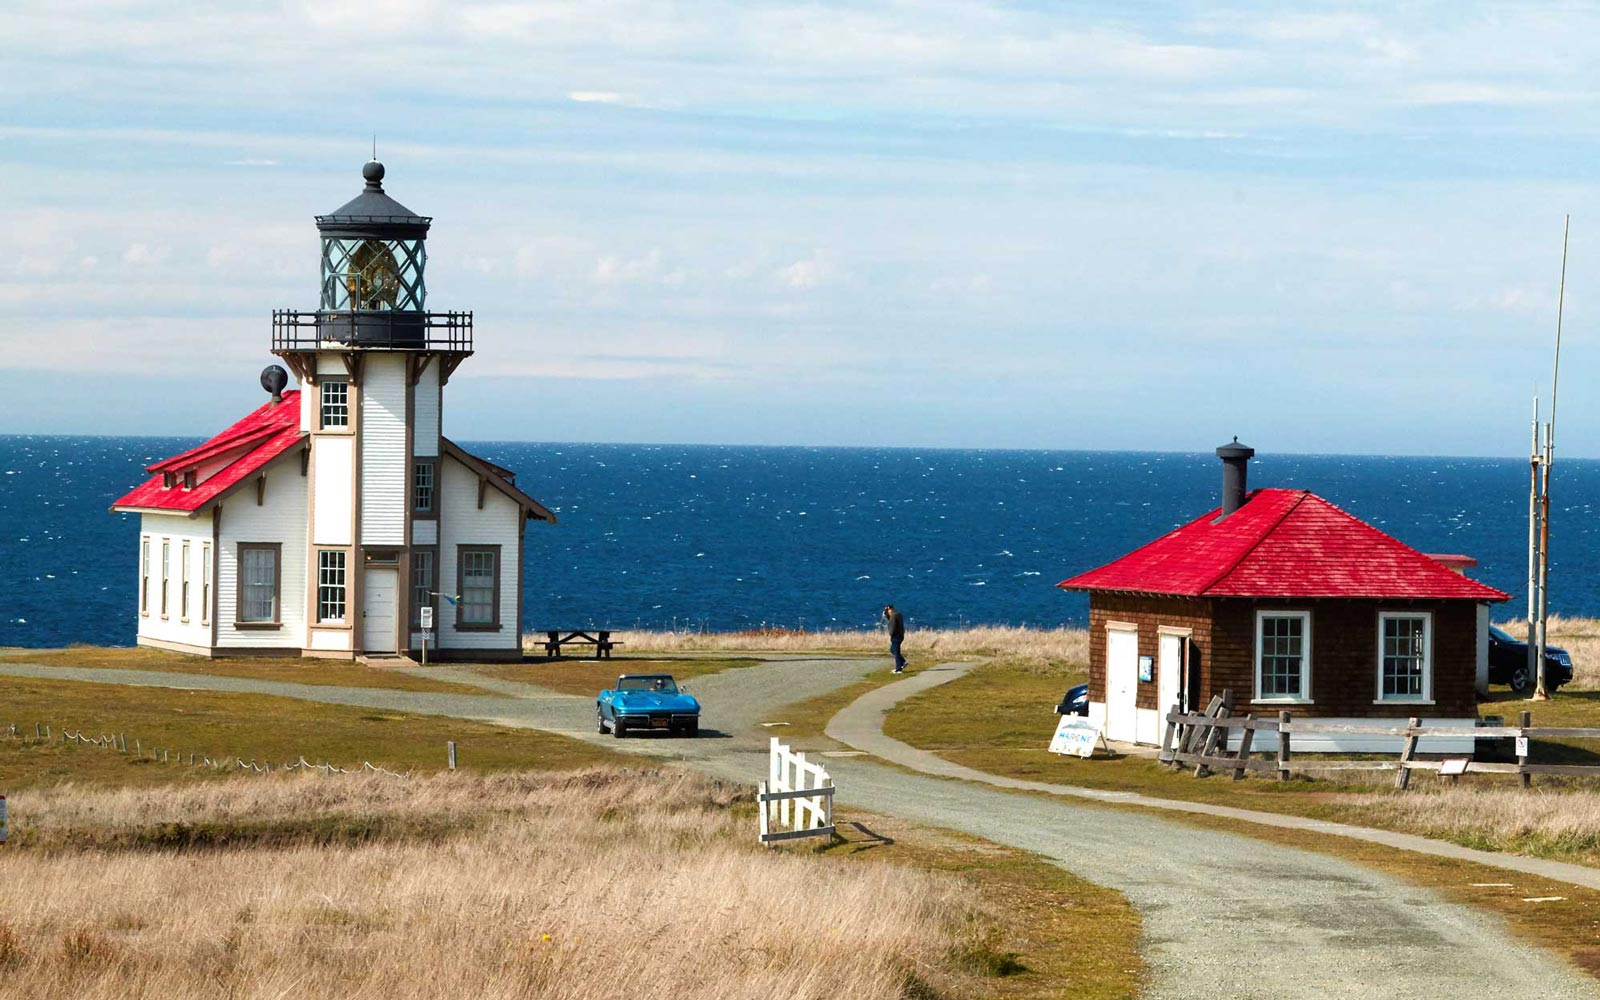 Vintage car driving past the Point Cabrillo Light Station, outside of Mendocino, California